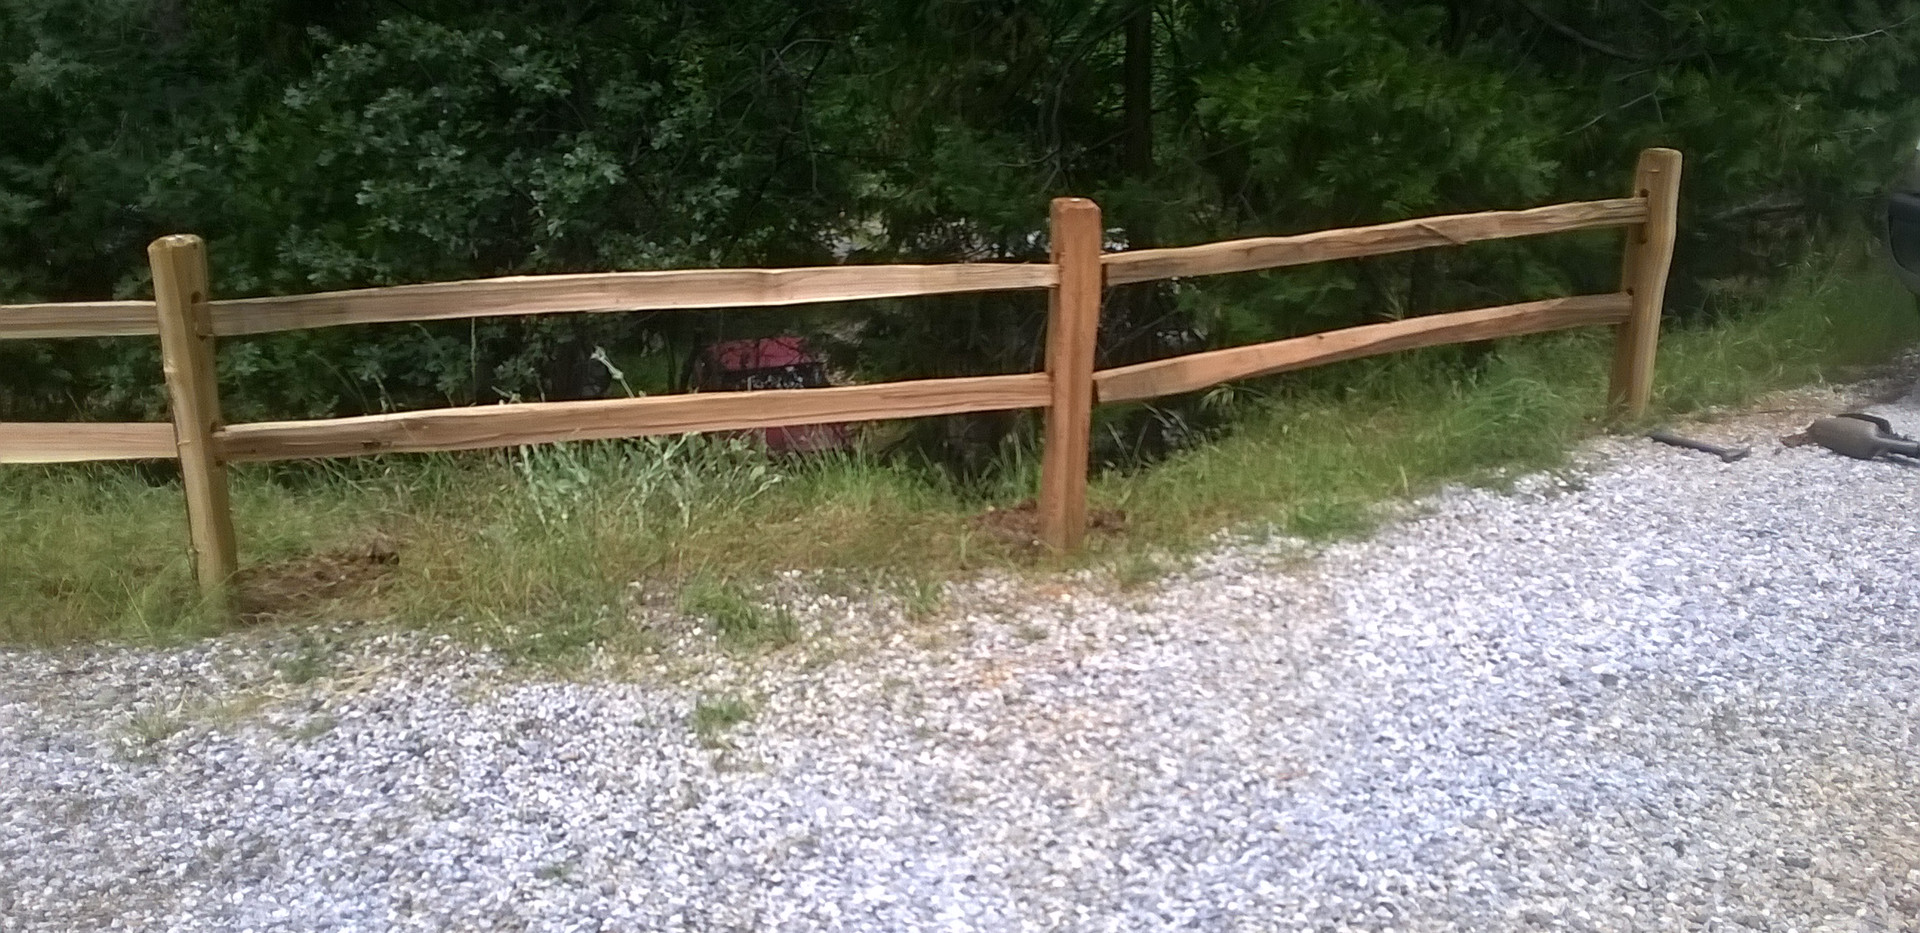 2 rail farm fence.jpg